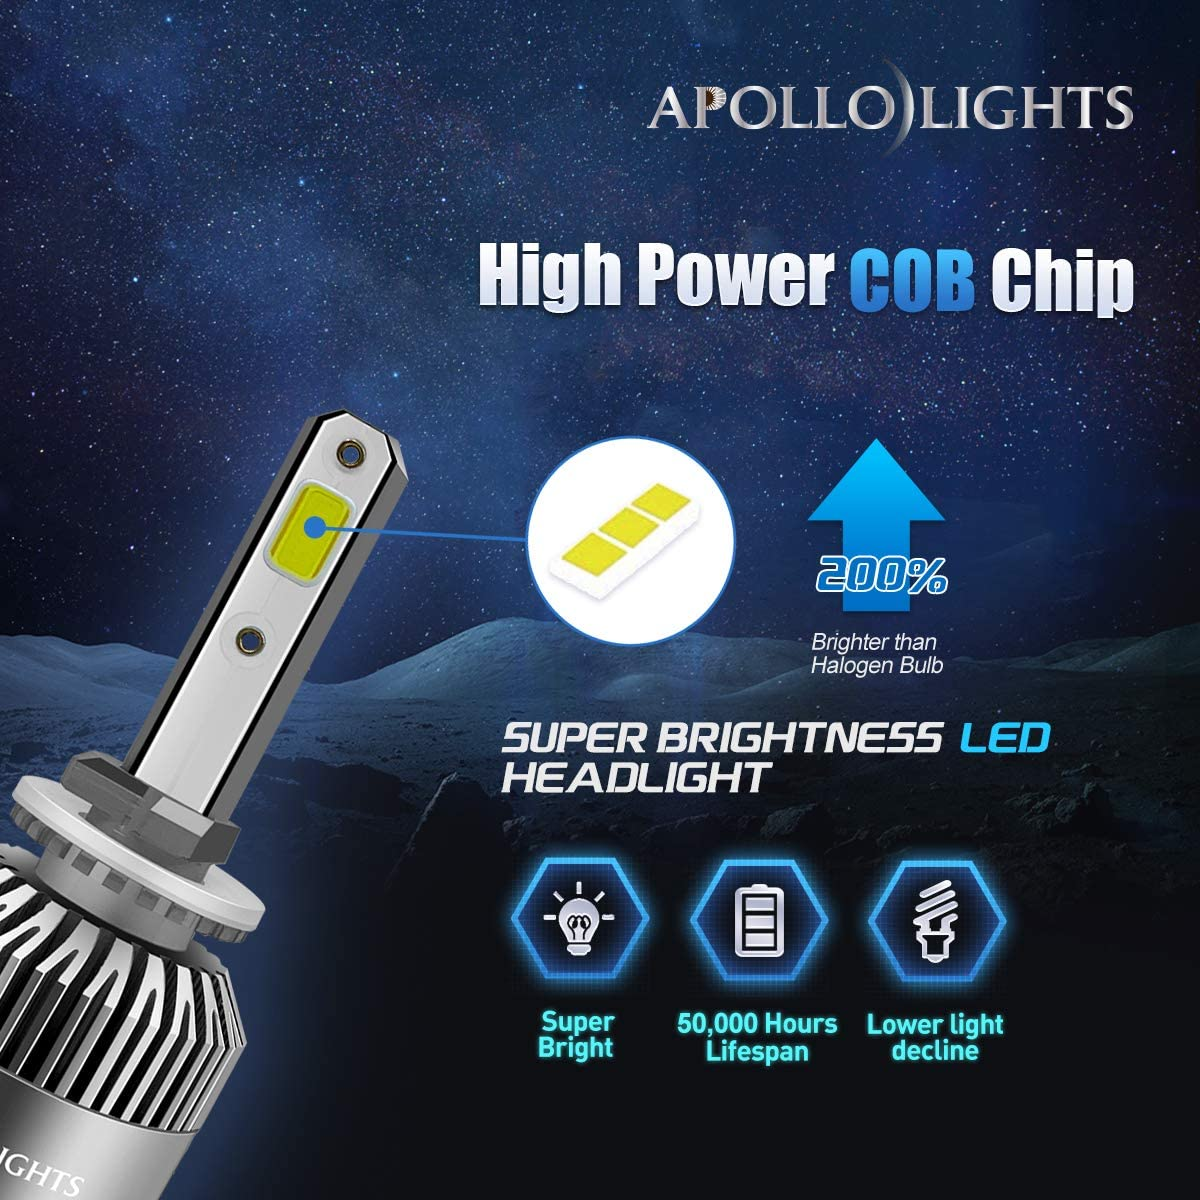 5202//2504 ApolloLights LED Fog Lights Bulbs Conversion Kit 2019 Gen 8000lm Bright 6000K Cool White With Build-In Fan